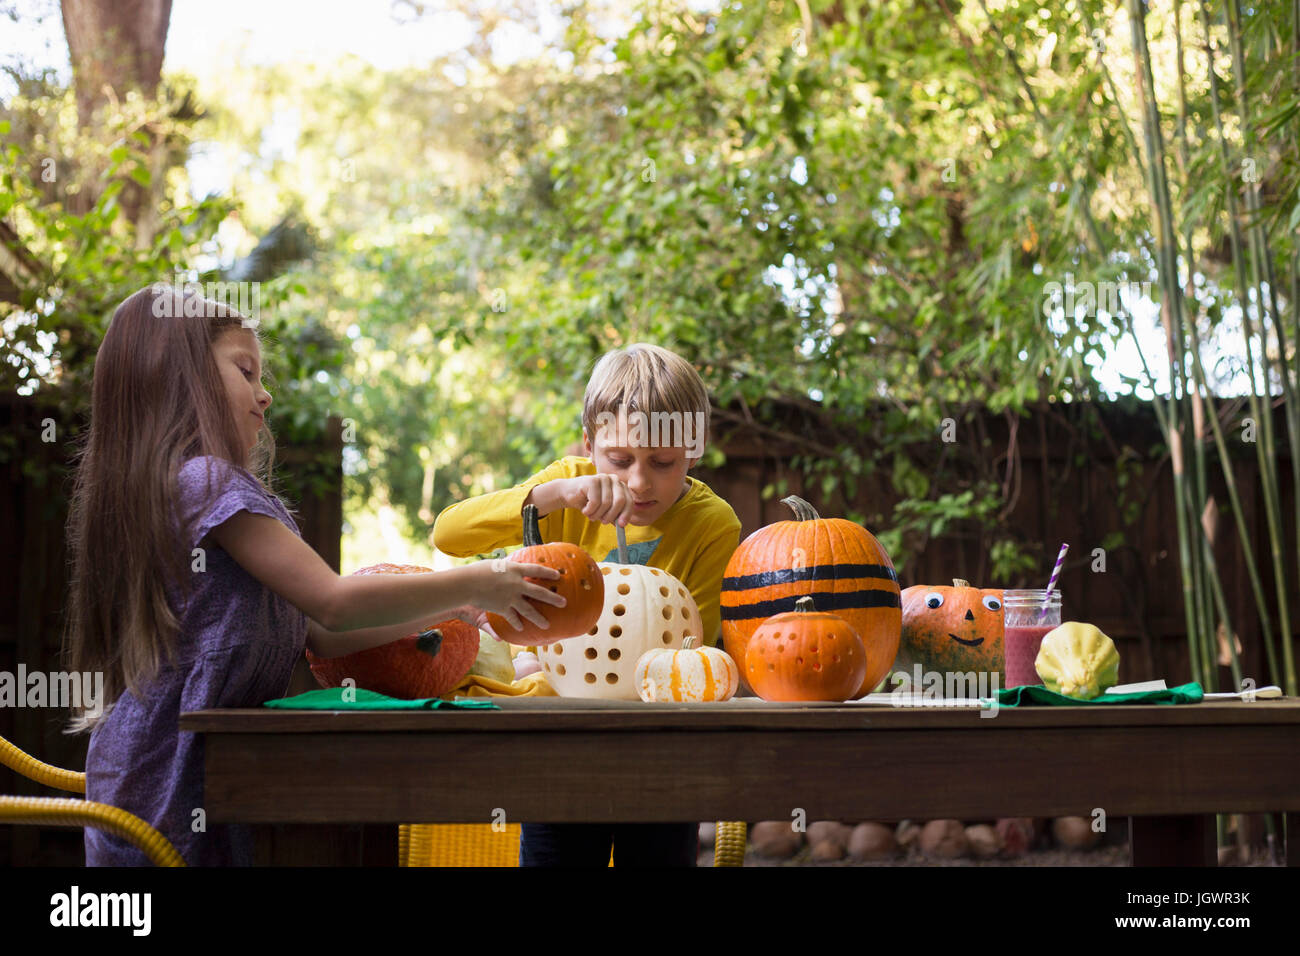 Boy and sister carving pumpkins on garden table - Stock Image